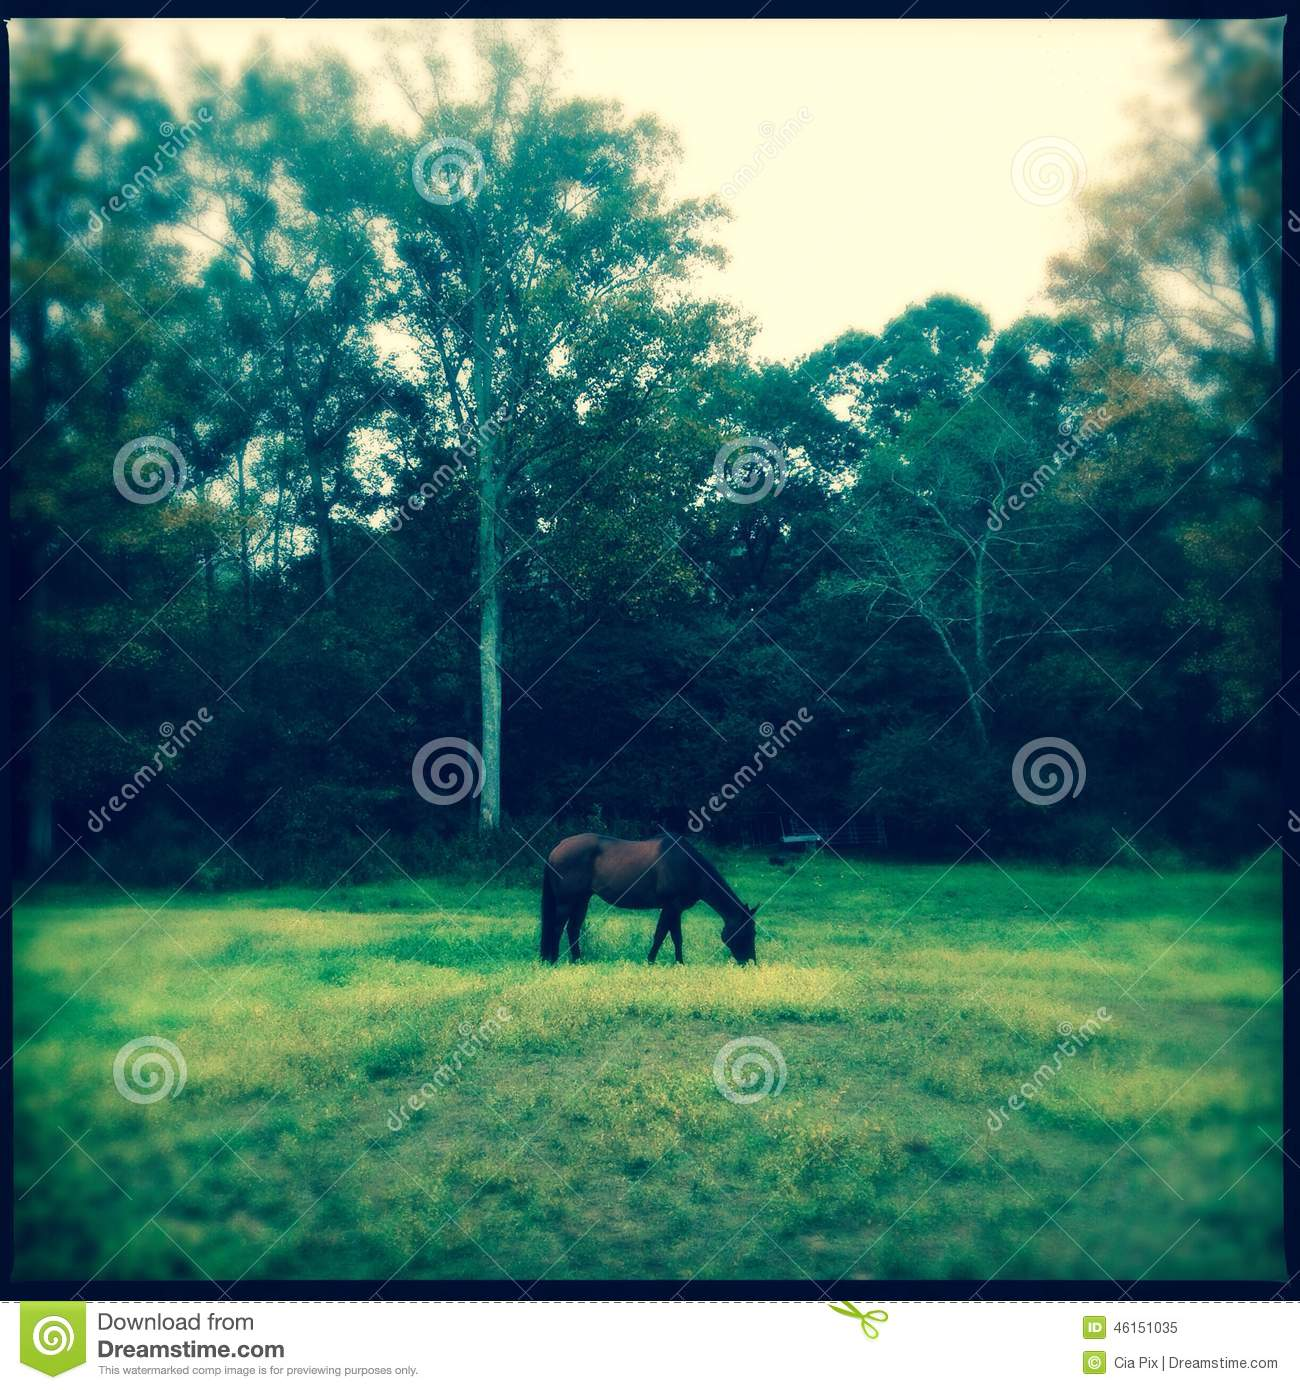 Horse grazing in green grass vintage effect